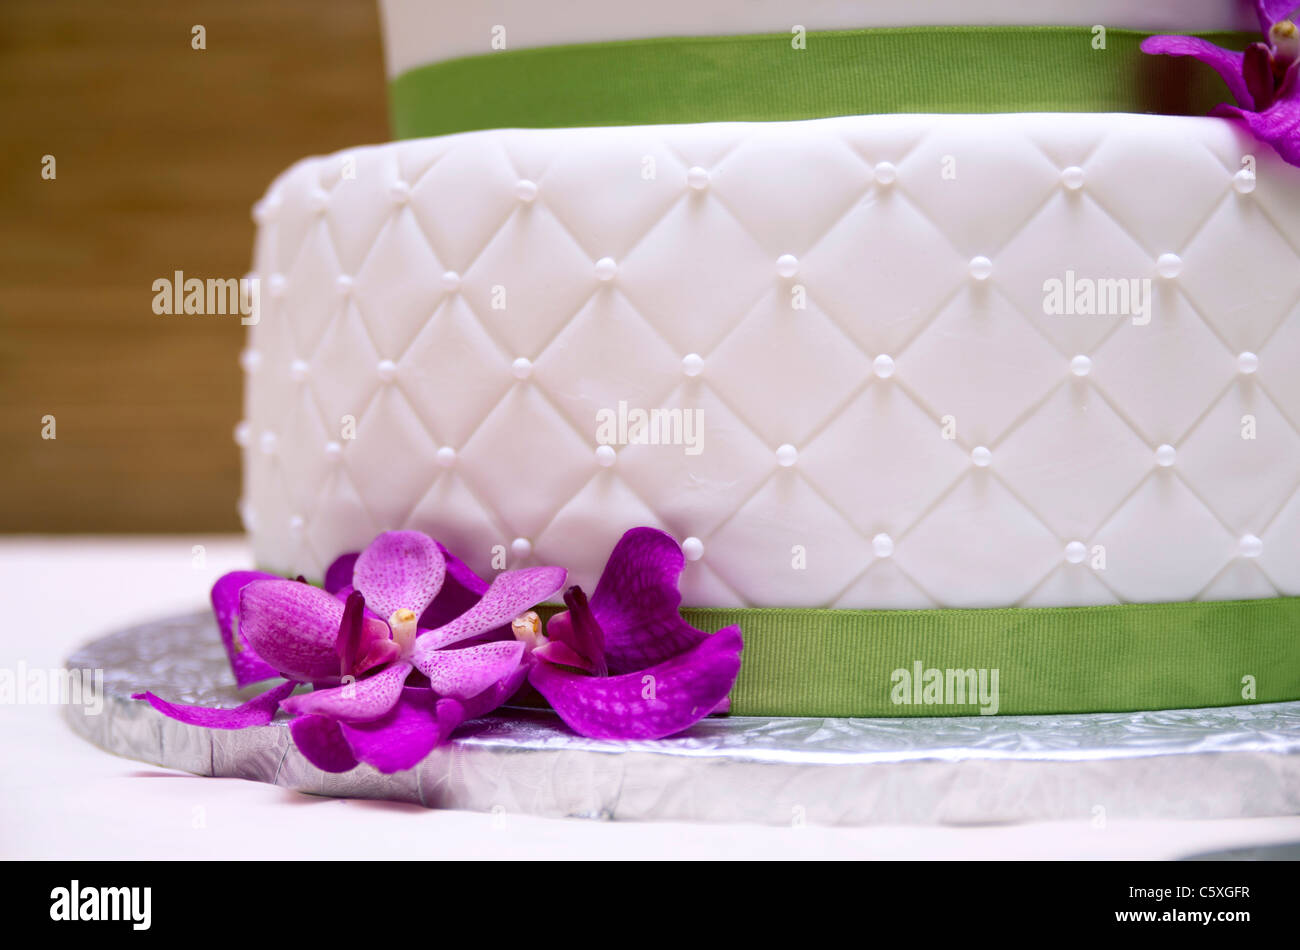 Wedding Cake Purple Flowers White Stock Photos Wedding Cake Purple